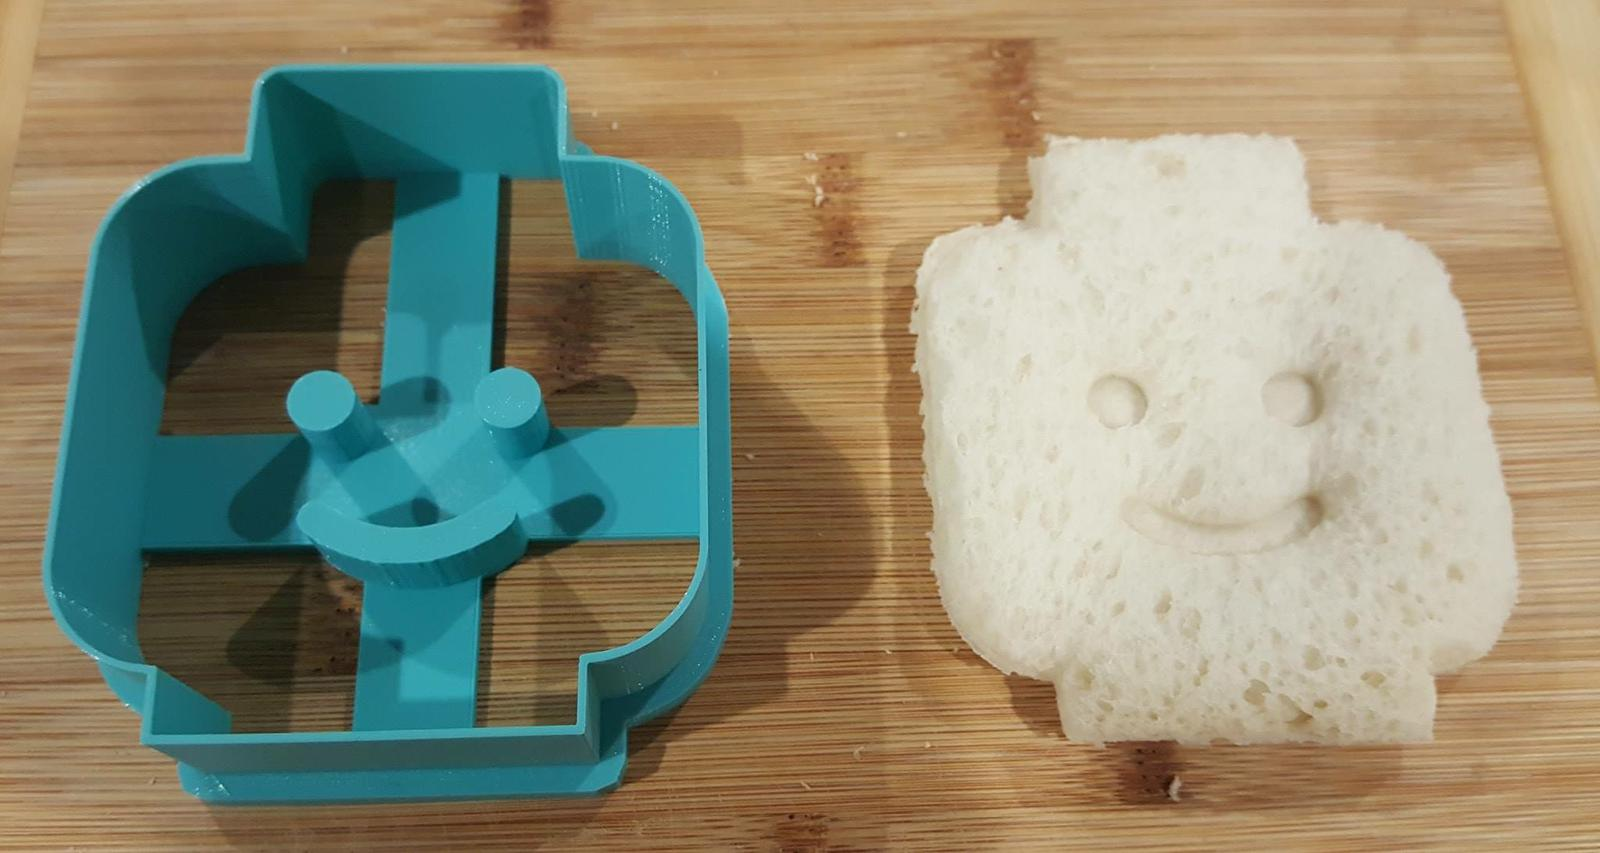 Our new range of sandwich cutters are ready to go